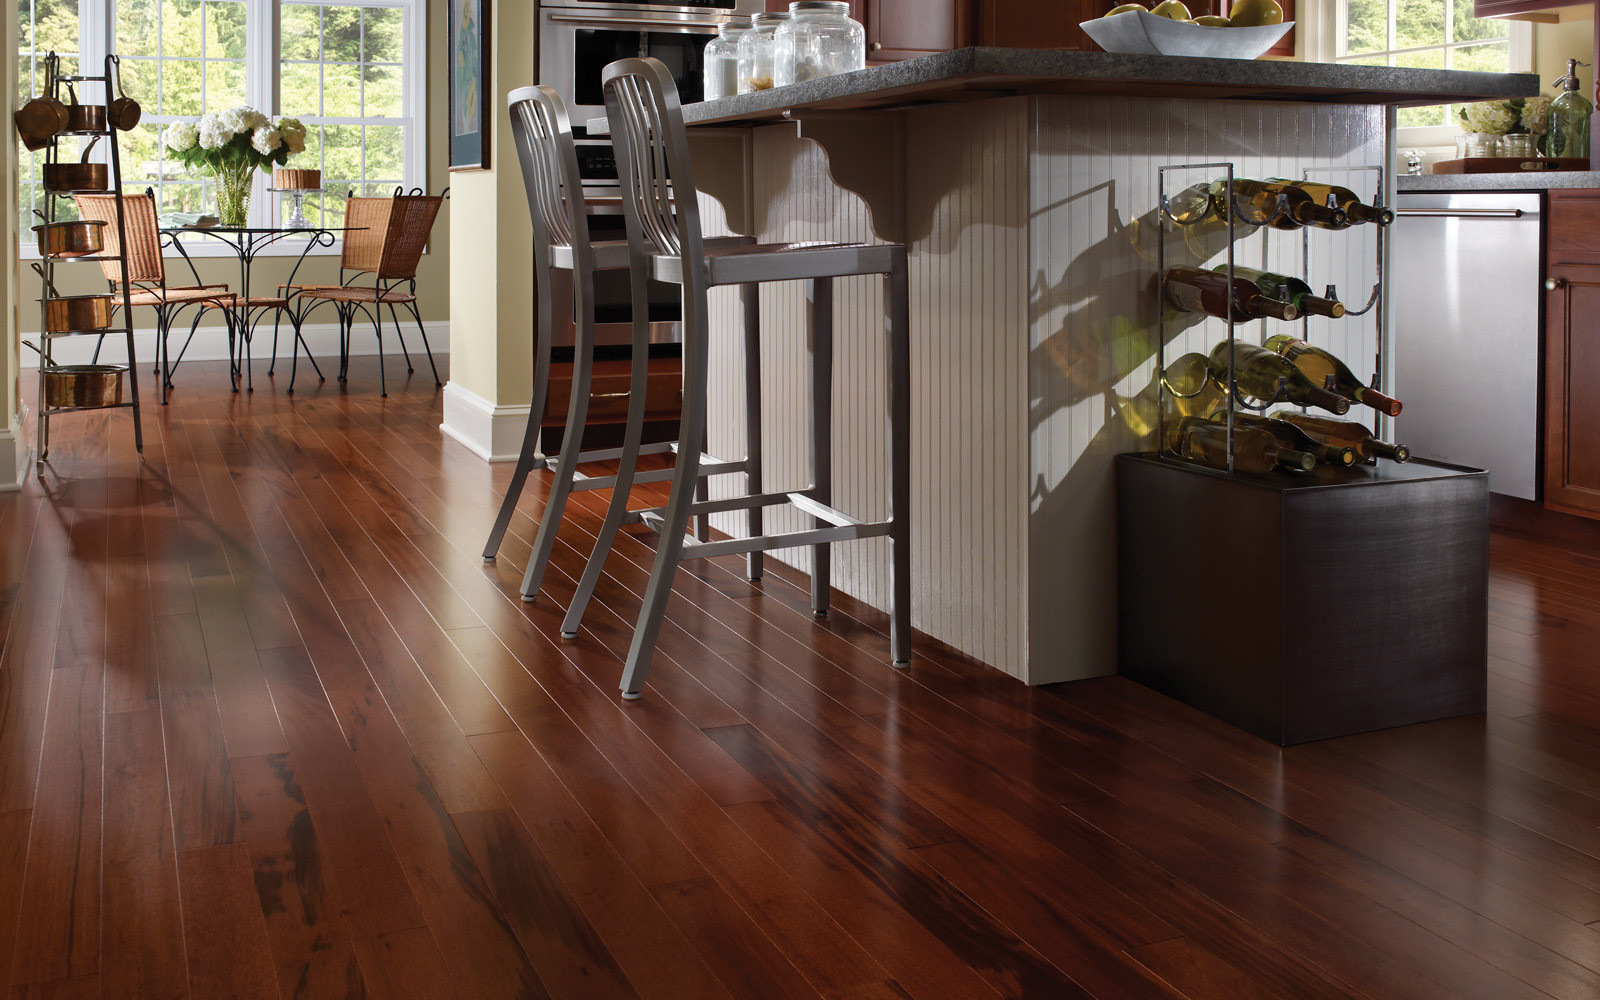 best hardwood flooring: signature hardwood floors - baltimore sun KMNWDZB